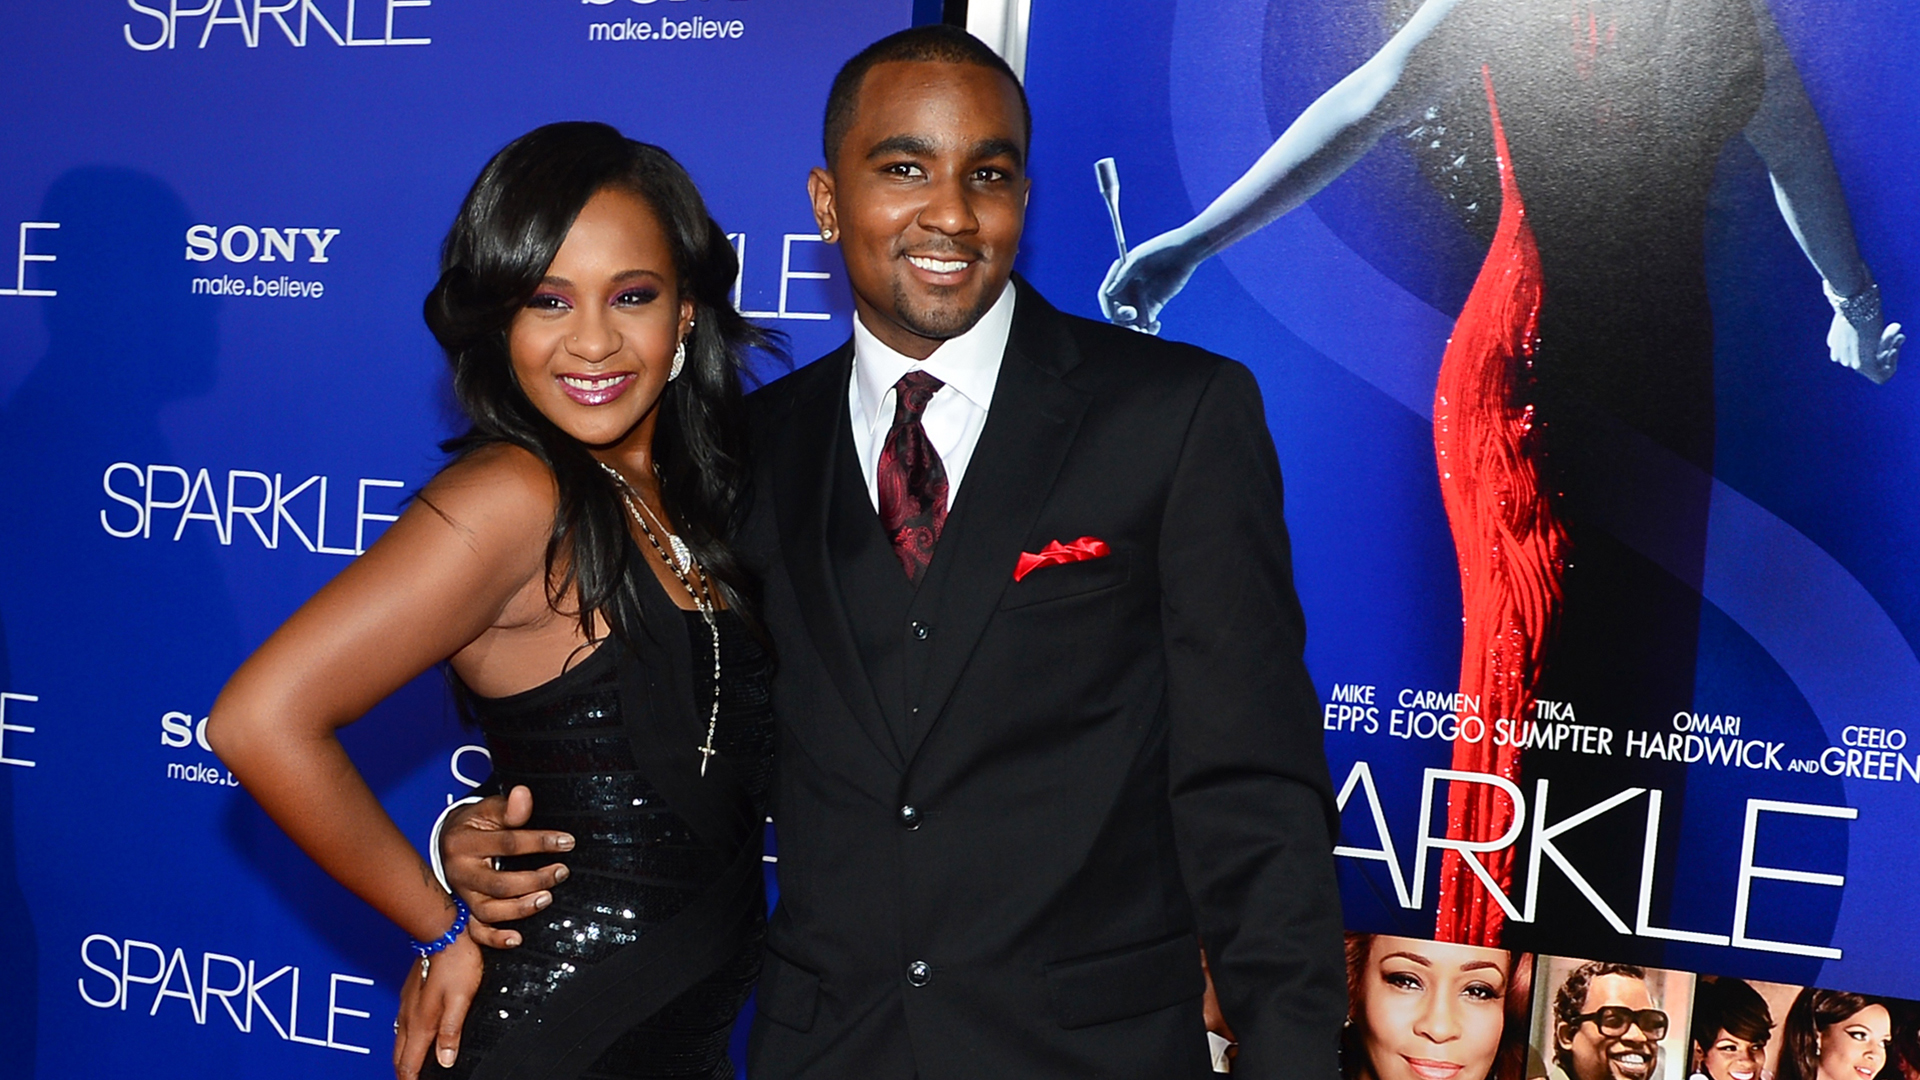 """Whitney Houston's daughter Bobbi Kristina Brown and her boyfriend Nick Gordon arrive for the premiere of """"Sparkle"""" at Grauman's Chinese Theater in Hollywood, California on August 16, 2012. (Credit: Frederic J. Brown/AFP/Getty Images)"""